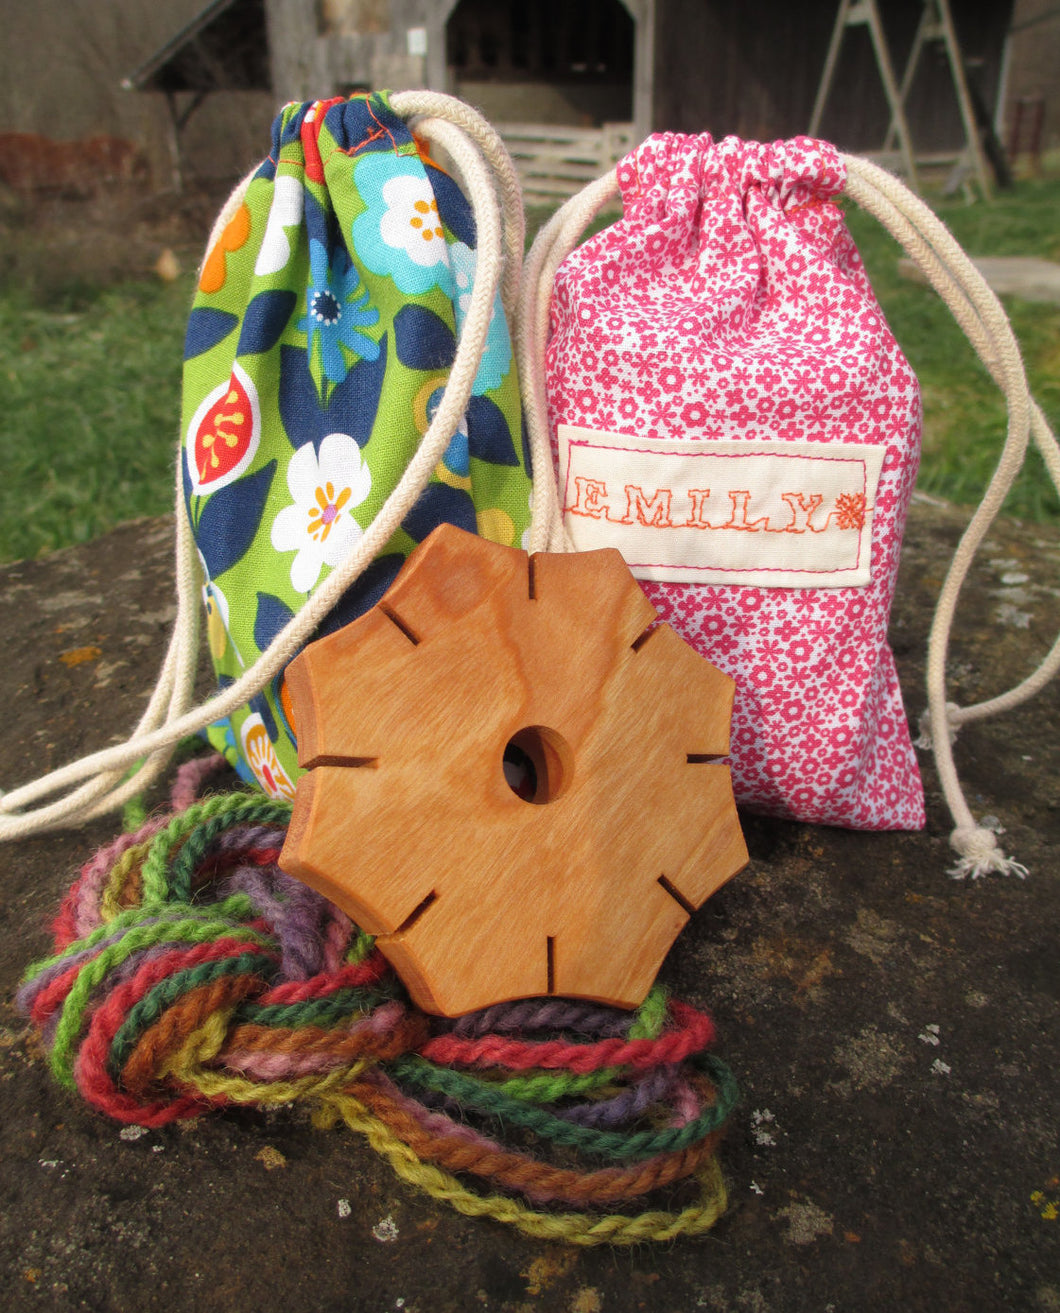 Braid Flower Kit with Hand-dyed Yarn and Keepsake Bag